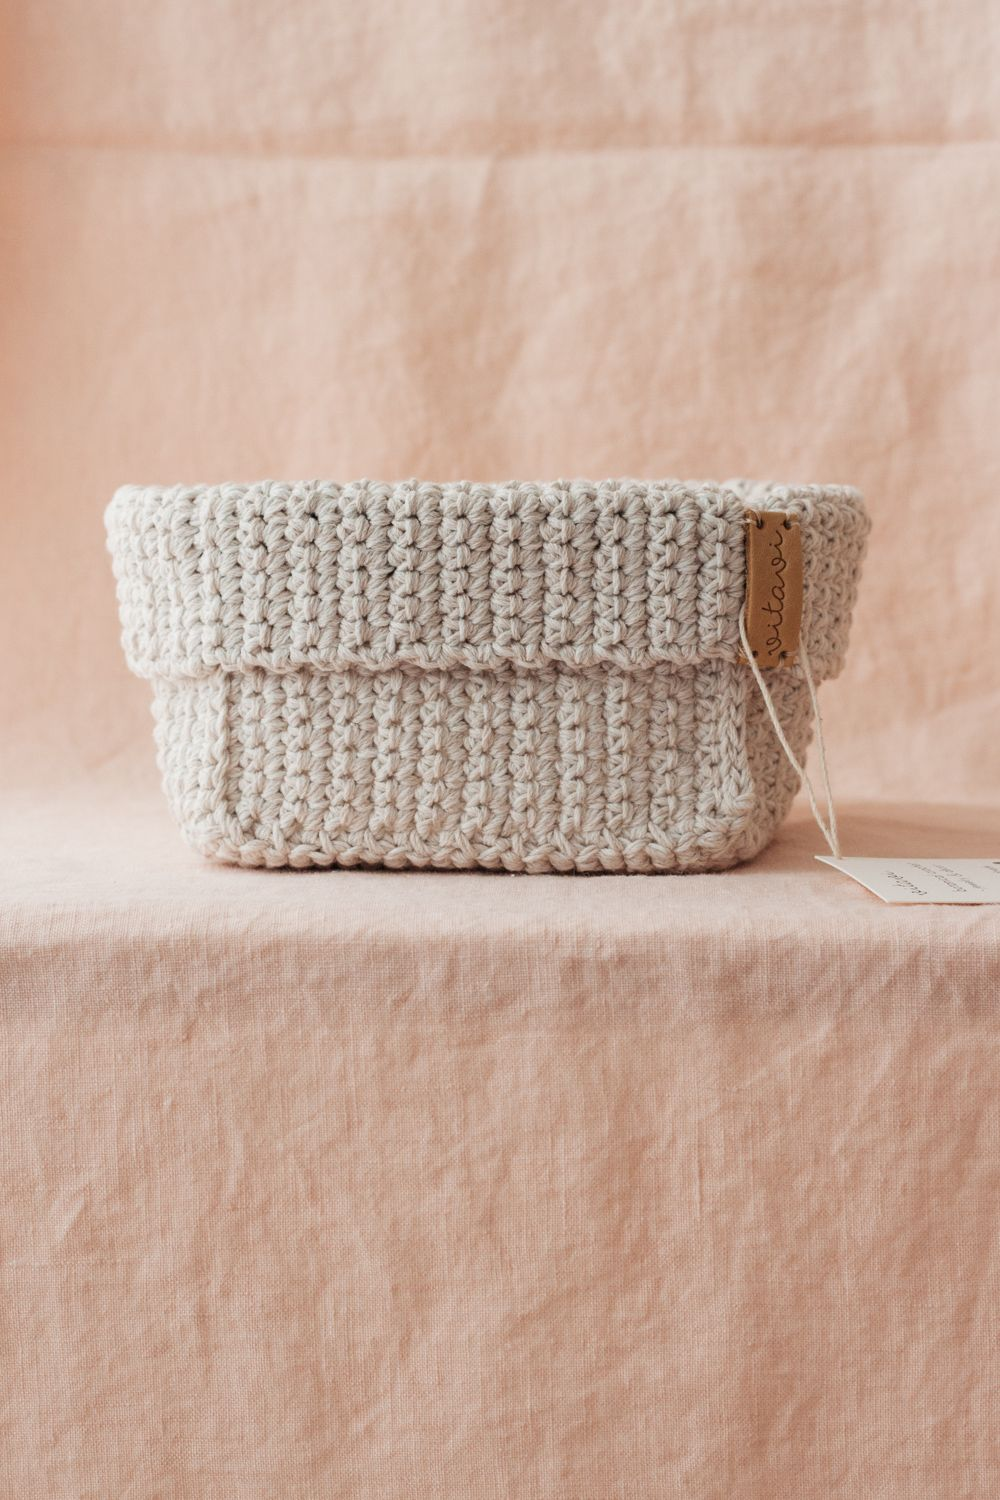 Big Handmade Crochet Basket - Cream